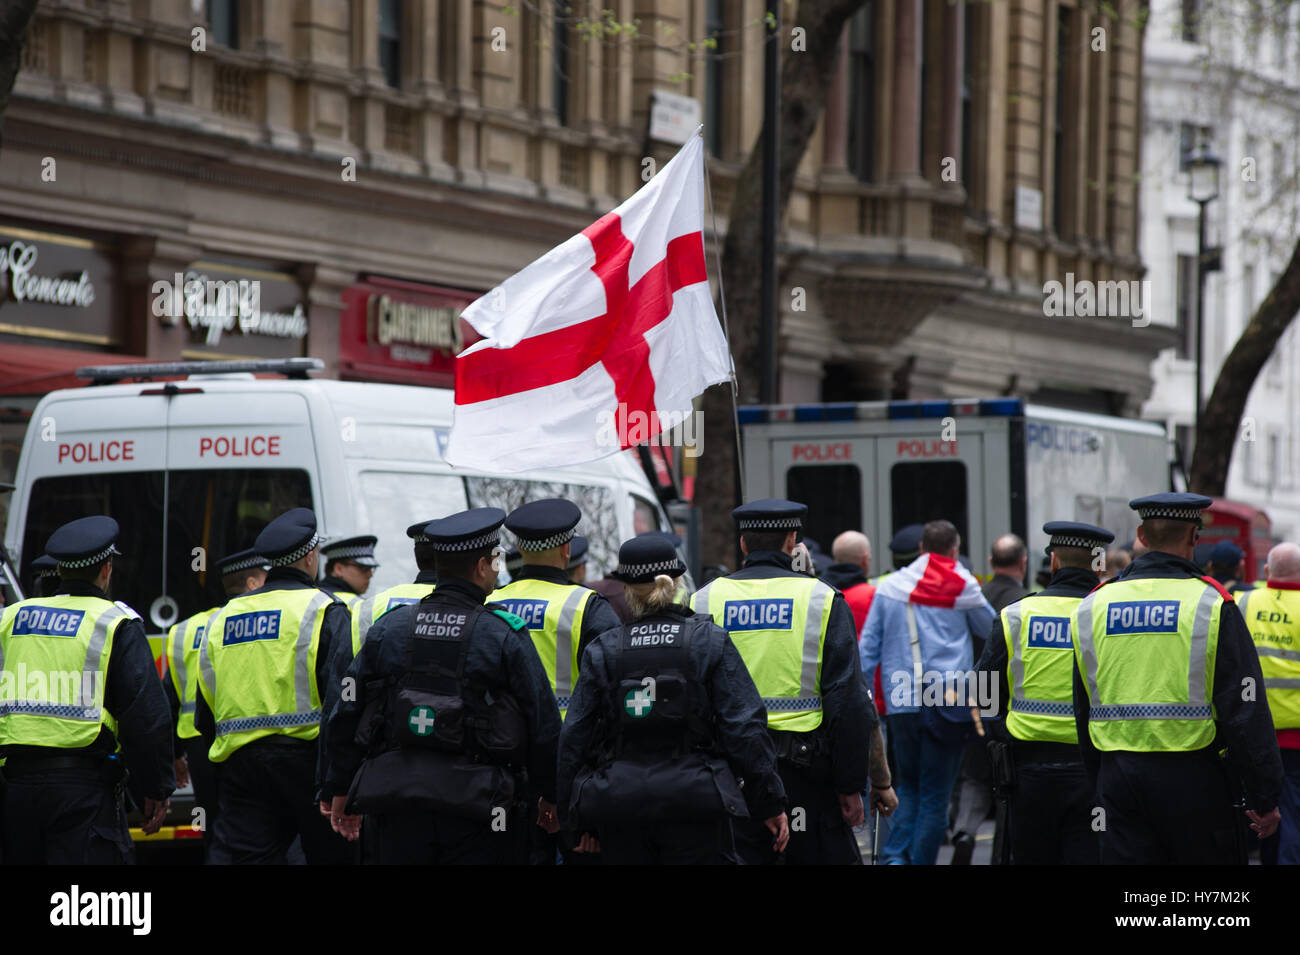 London, UK. 1st April, 2017.  The English Defence League (EDL) and Britain First held a protest march through London. - Stock Image